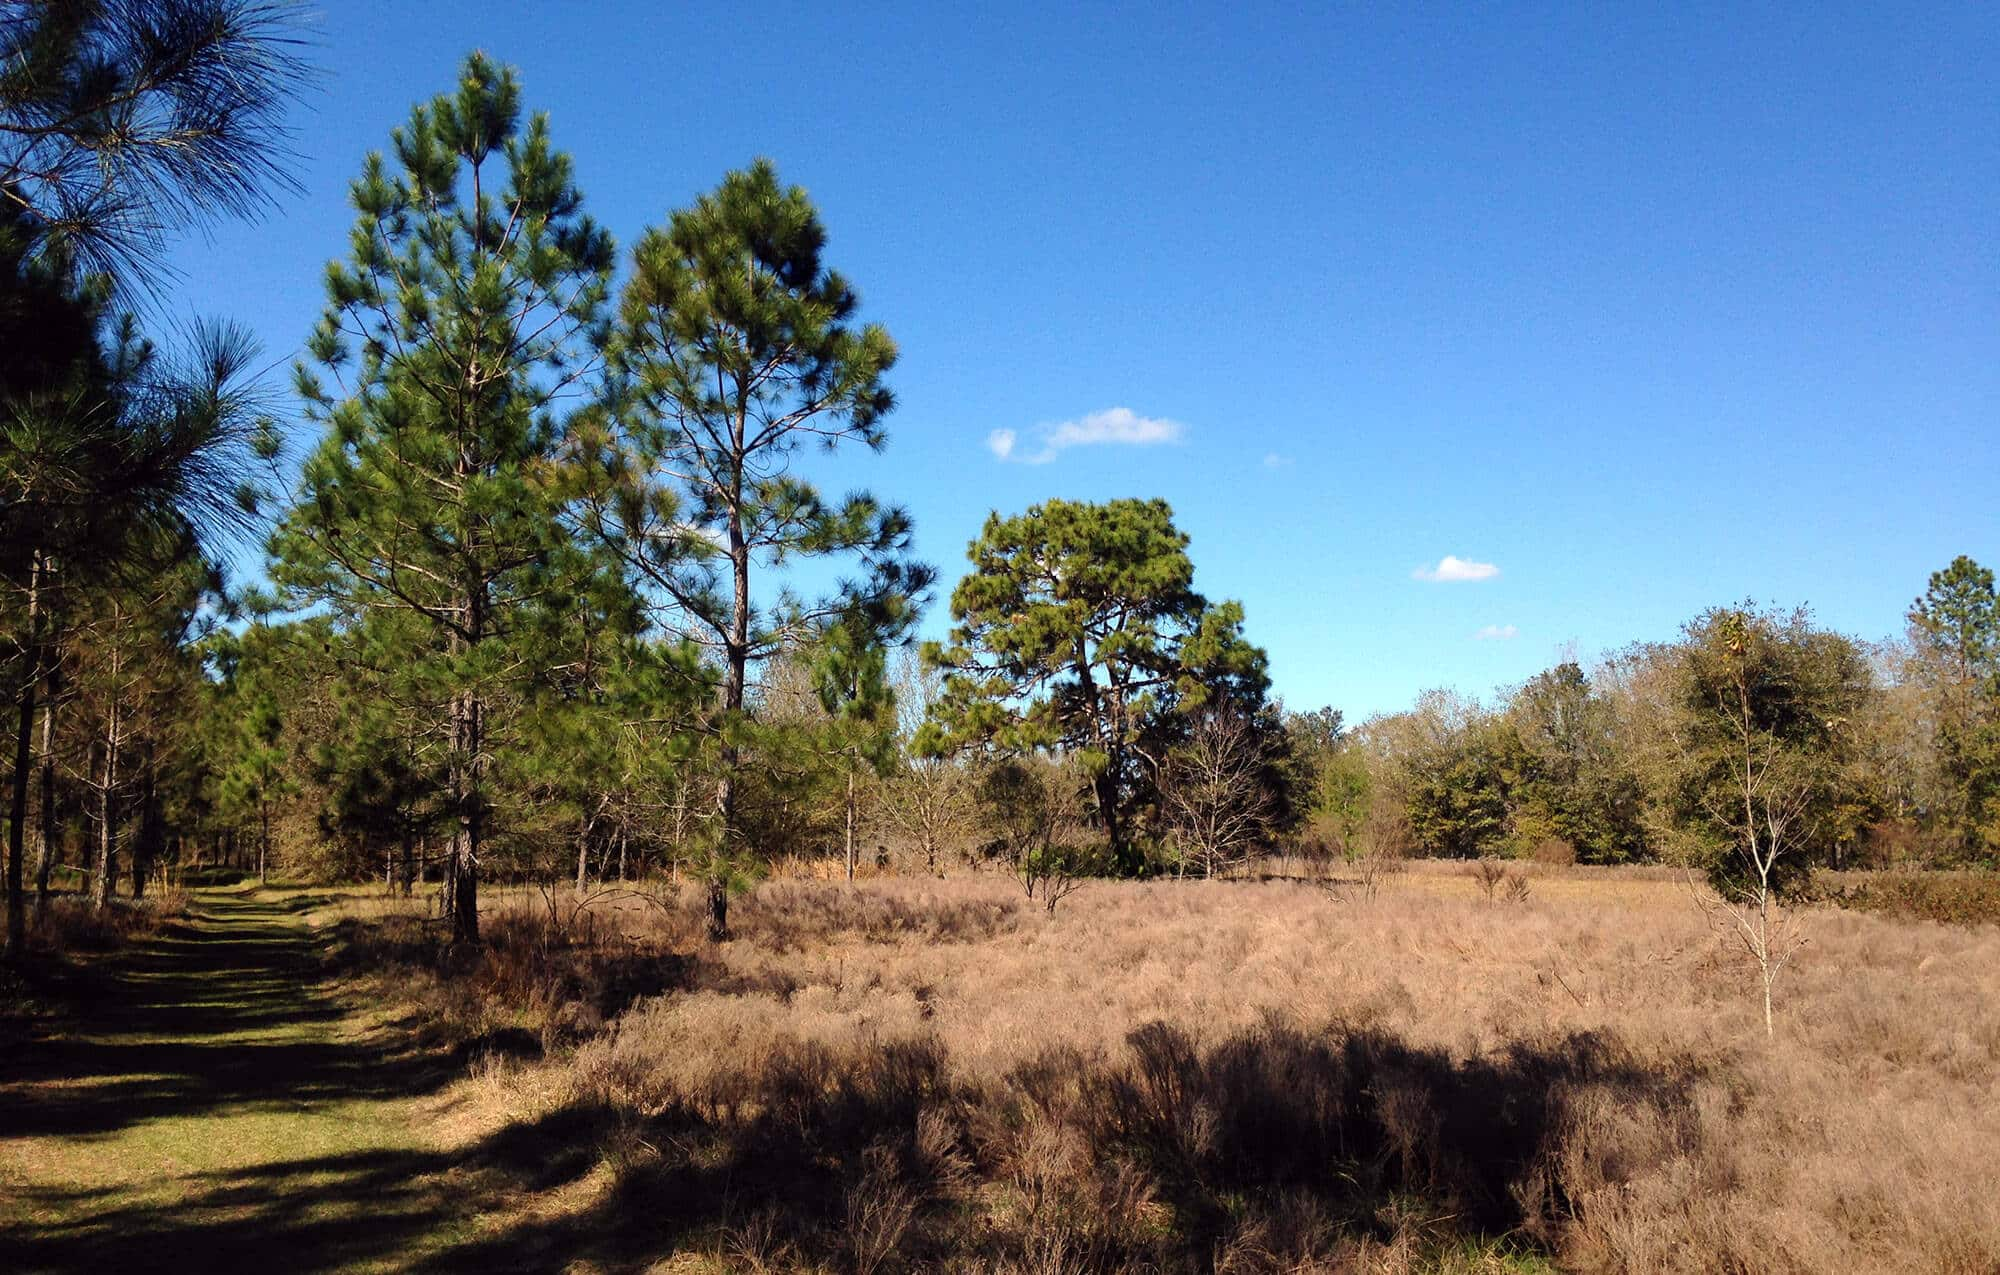 Grassy hiking trail next to scrub and pines at Gator Creek Reserve in Lakeland, FL